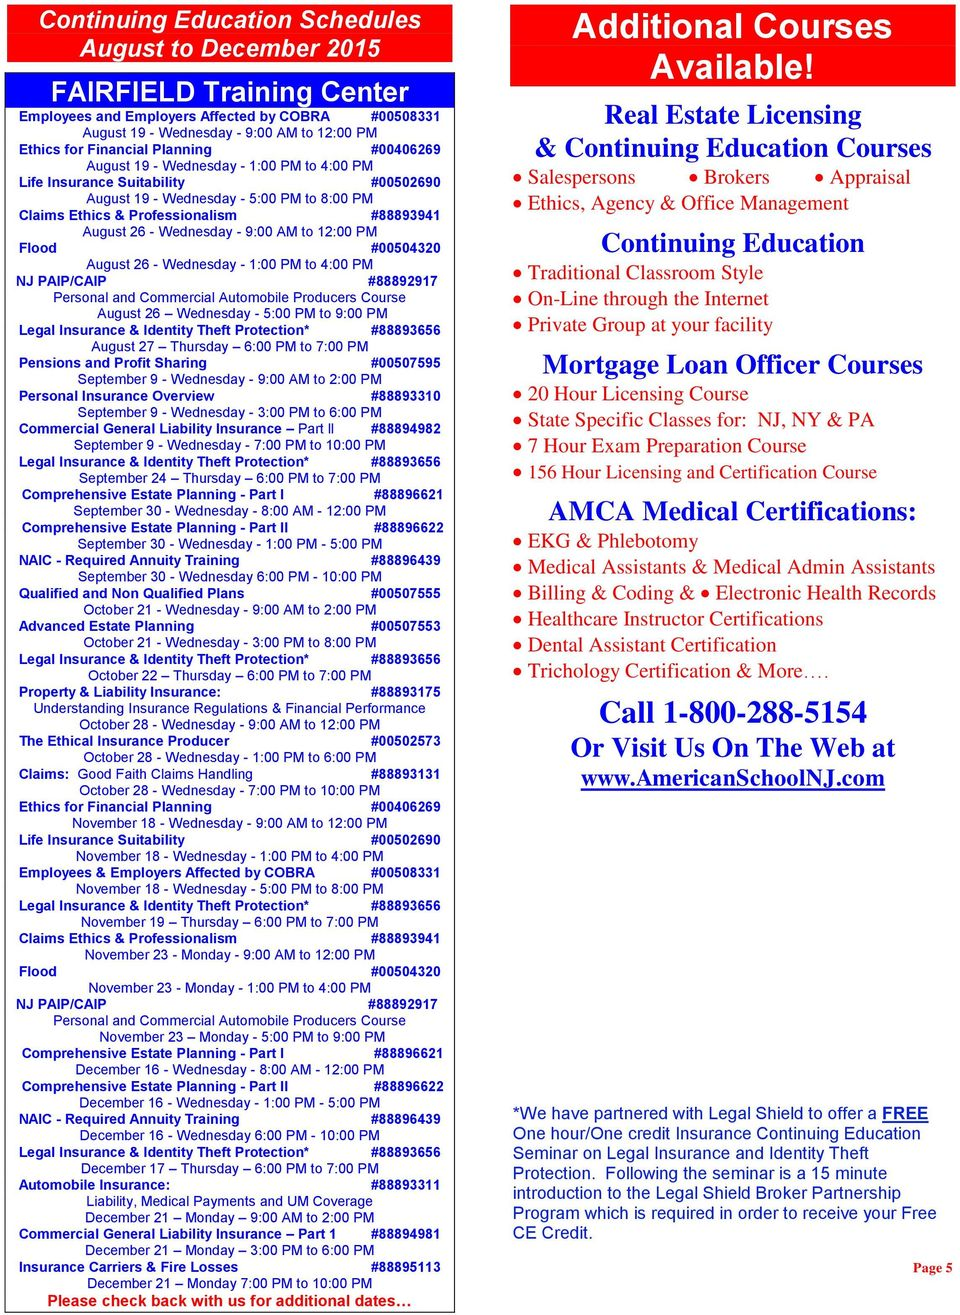 Wednesday - 9:00 AM to 12:00 PM Flood #00504320 August 26 - Wednesday - 1:00 PM to 4:00 PM NJ PAIP/CAIP #88892917 Personal and Commercial Automobile Producers Course August 26 Wednesday - 5:00 PM to